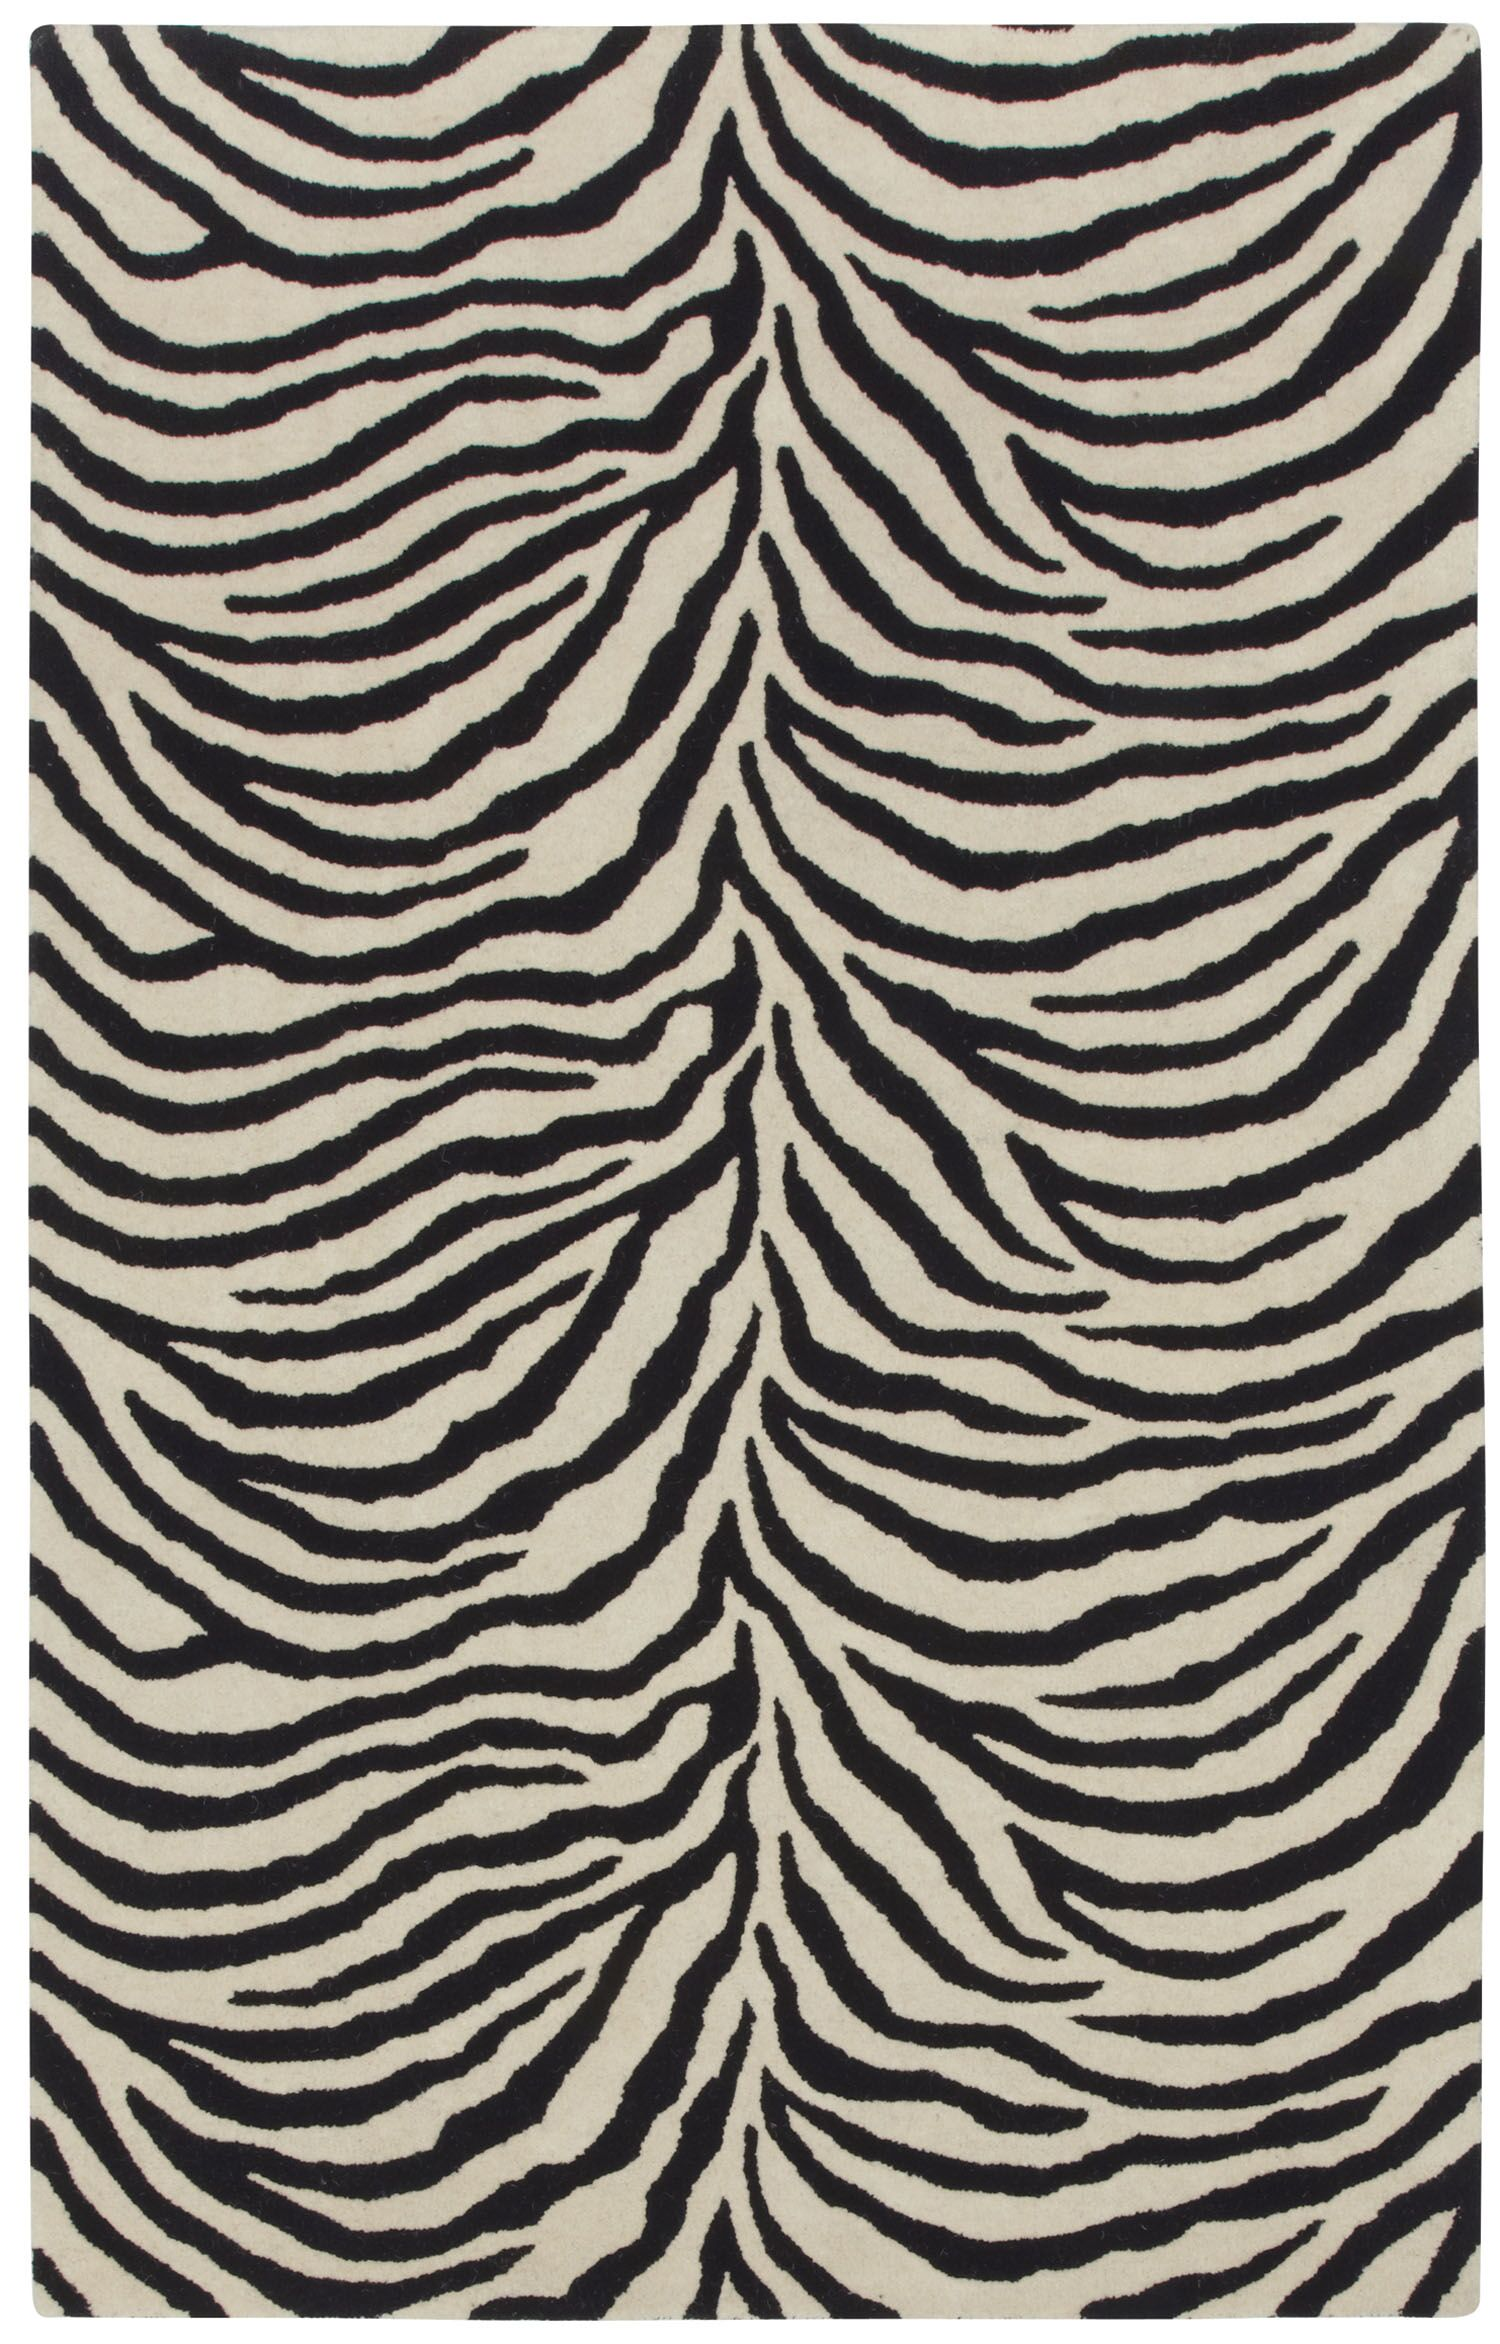 Expedition Black/White Zebra Area Rug Rug Size: Rectangle 7' x 9'